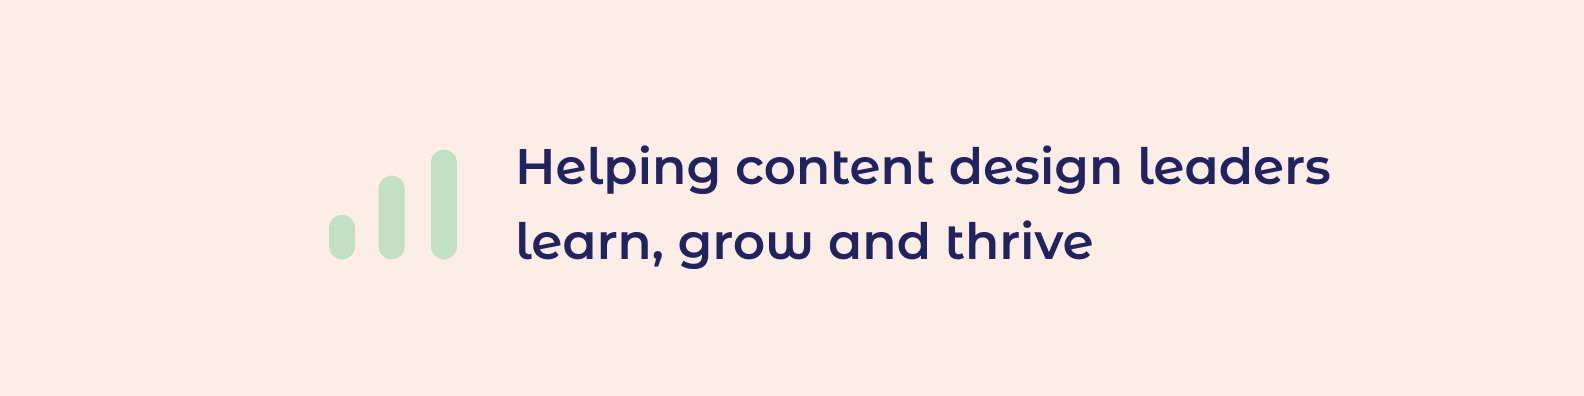 Pink background with helping content design leaders learn grown and thrive written in blue